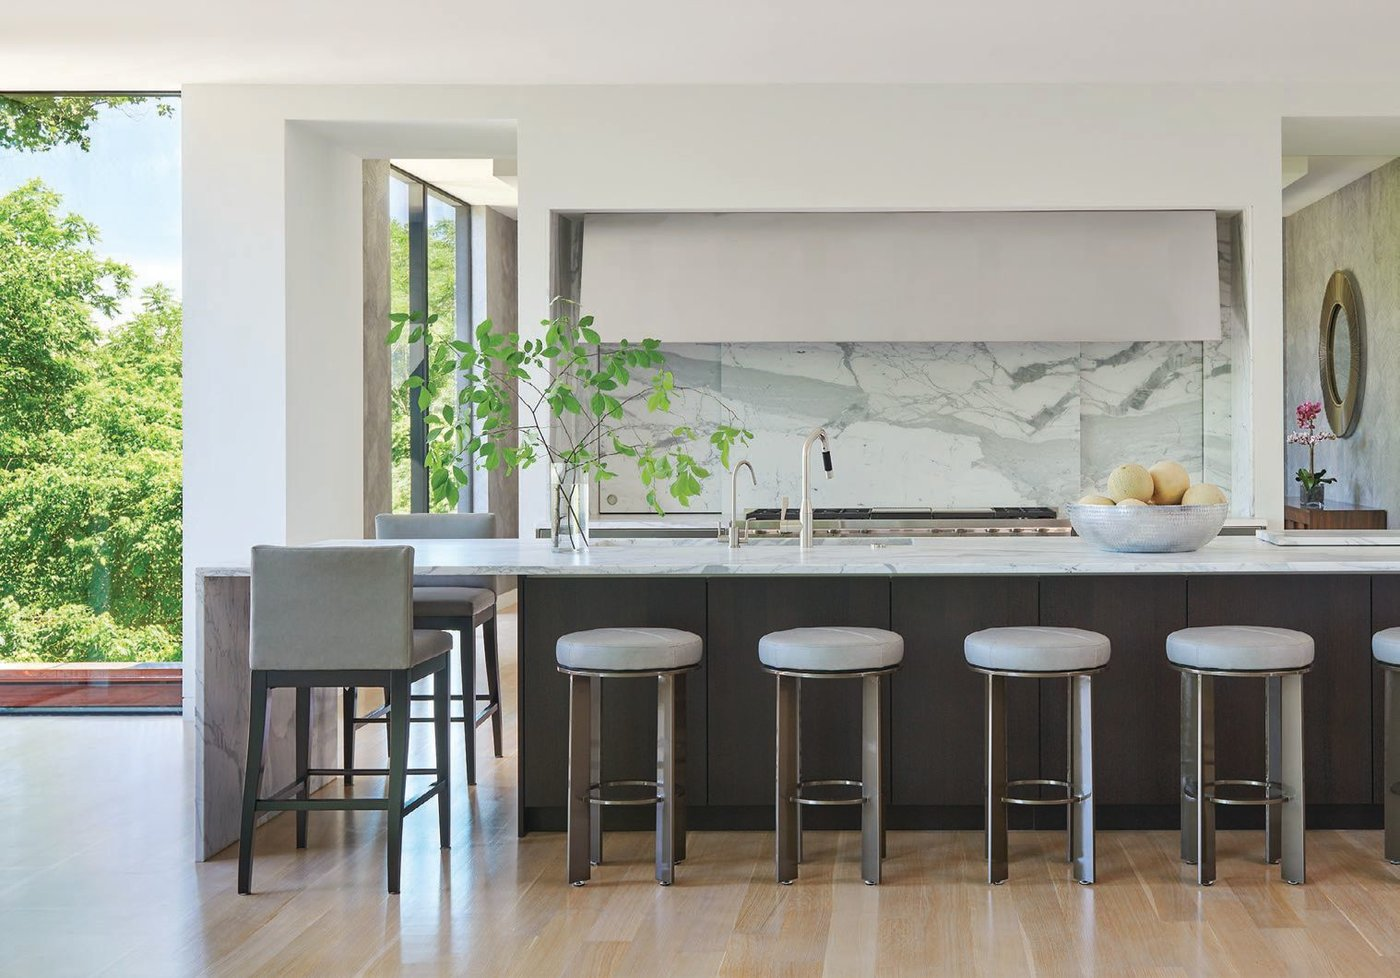 The bright kitchen includes Konst SieMatic (konstsiematic.com) cabinetry and Sub-Zero and Wolf appliances (subzero-wolf.com) PHOTOGRAPHED BY ANICE HOACHLANDER